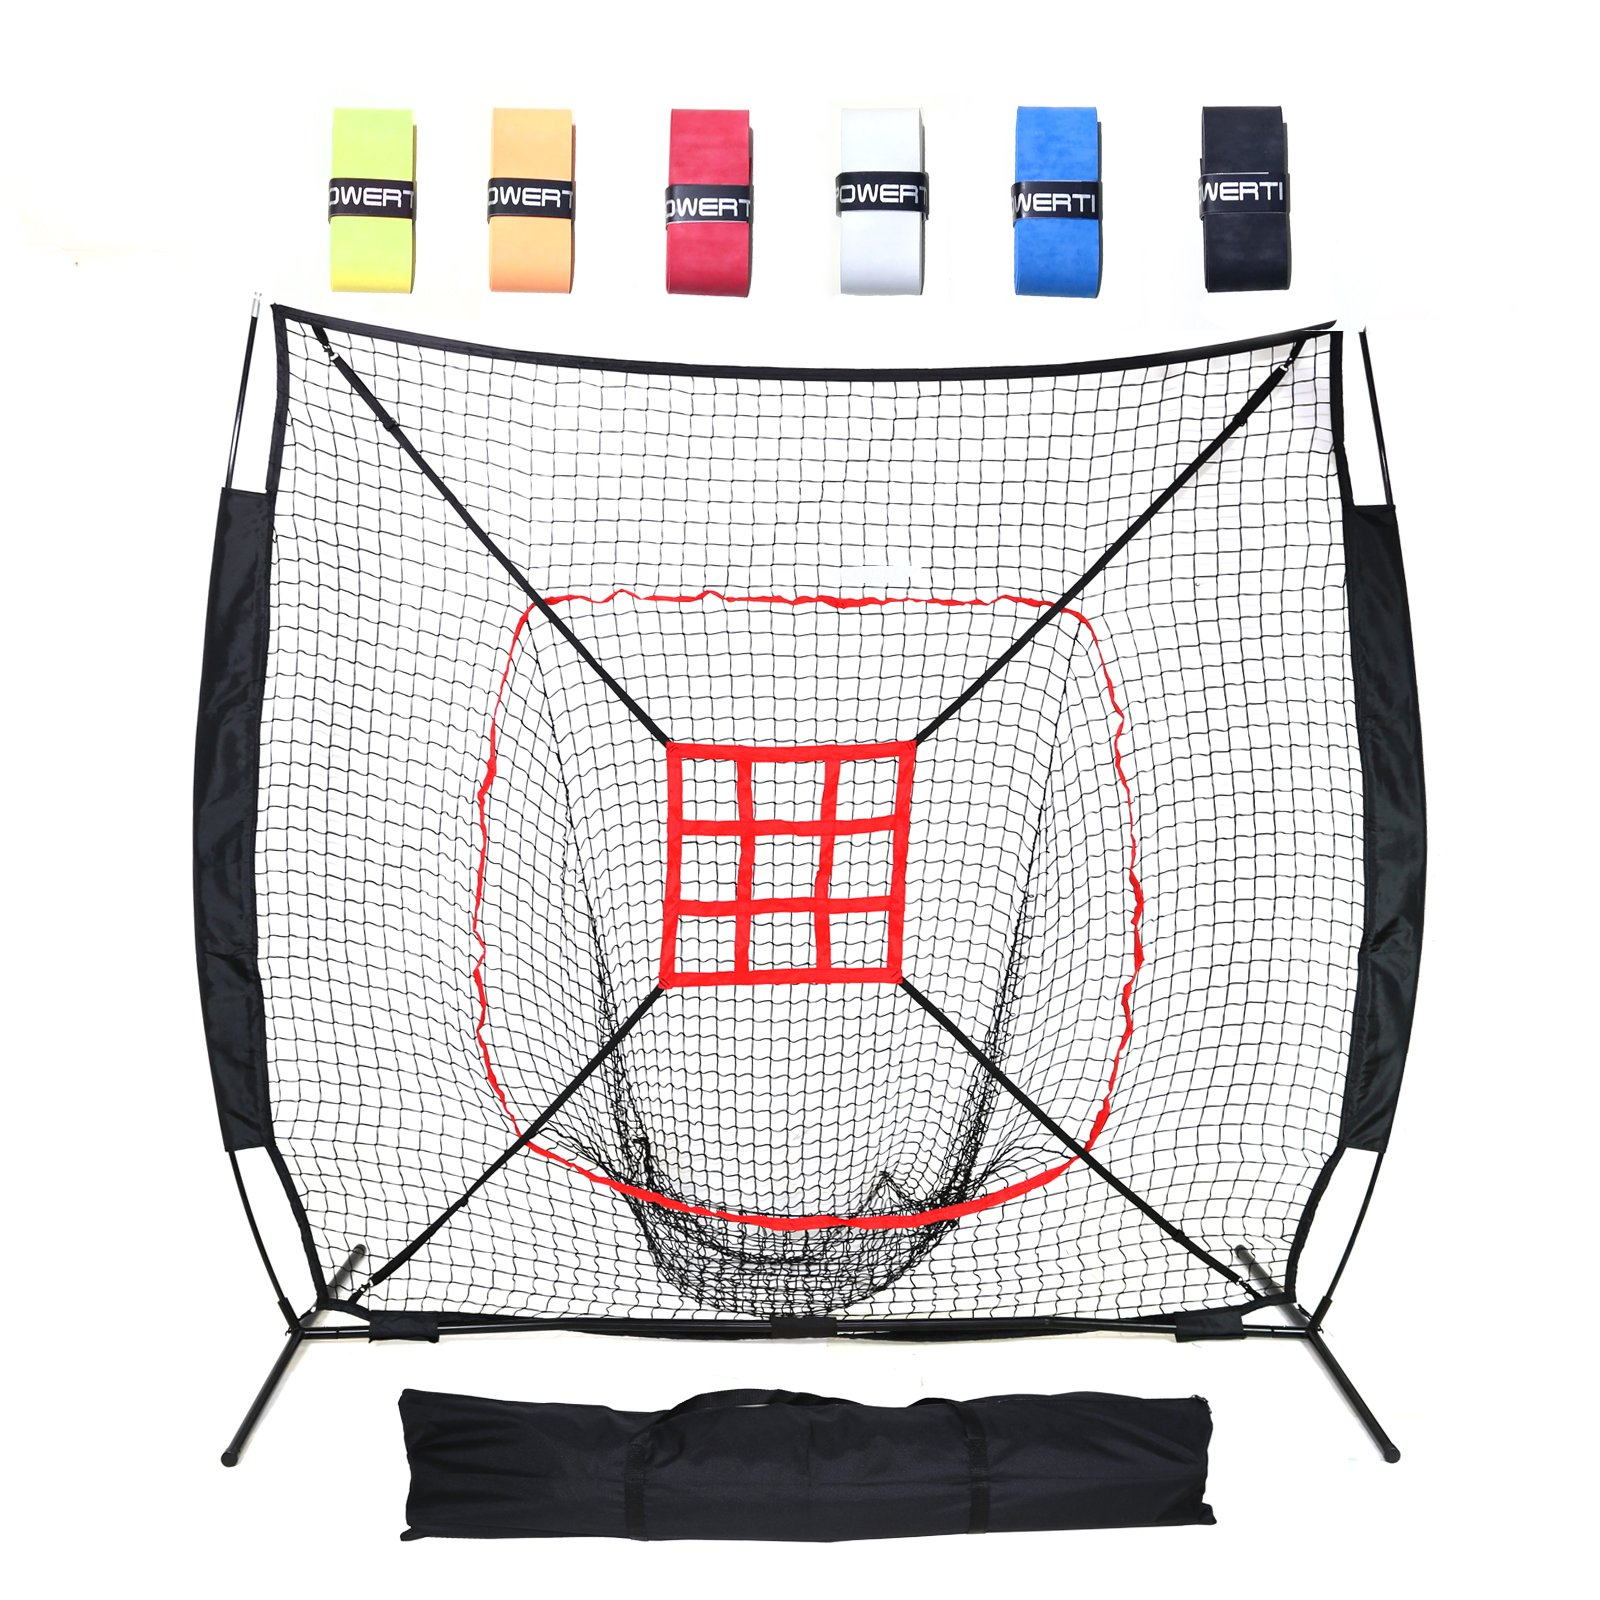 DACTECH 7 x 7 ft Baseball Softball Pitching And Hitting Net Large Mouth Training Aids Backstop with Bonus 6 Bat Grips, Bow Frame, Carry Bag, and Strike Zone